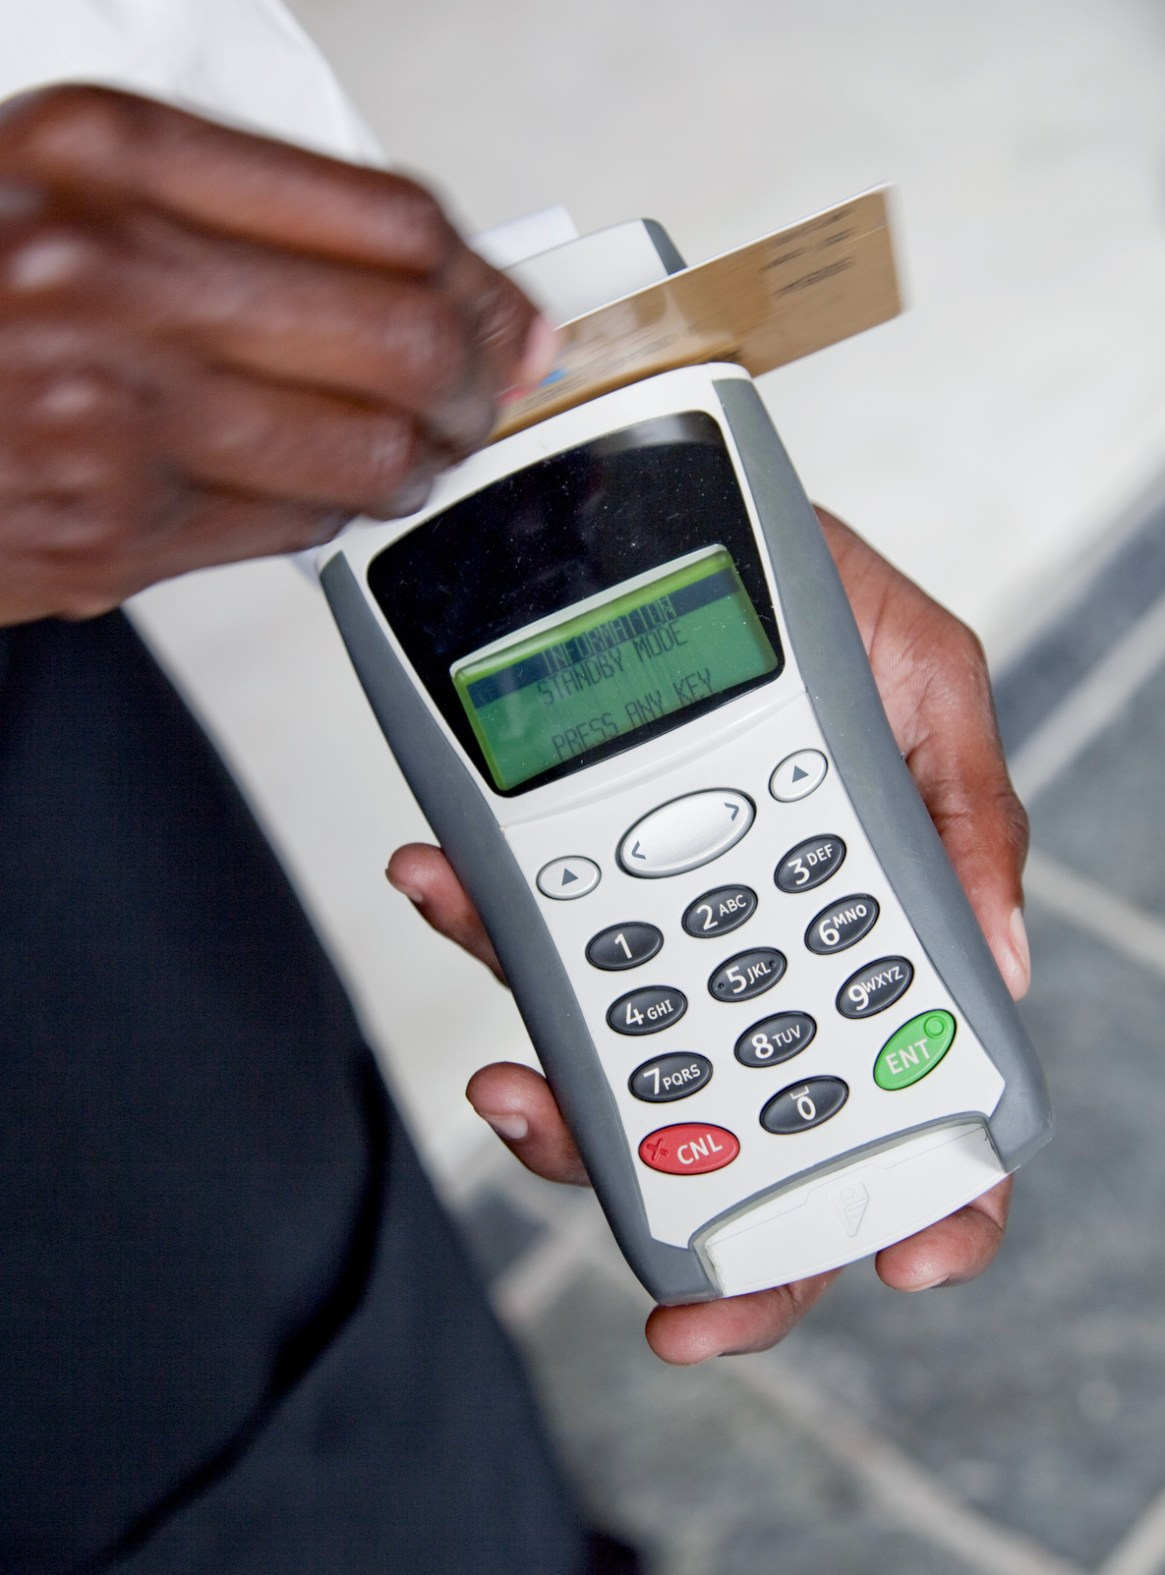 short-term merchant account to process credit card payments